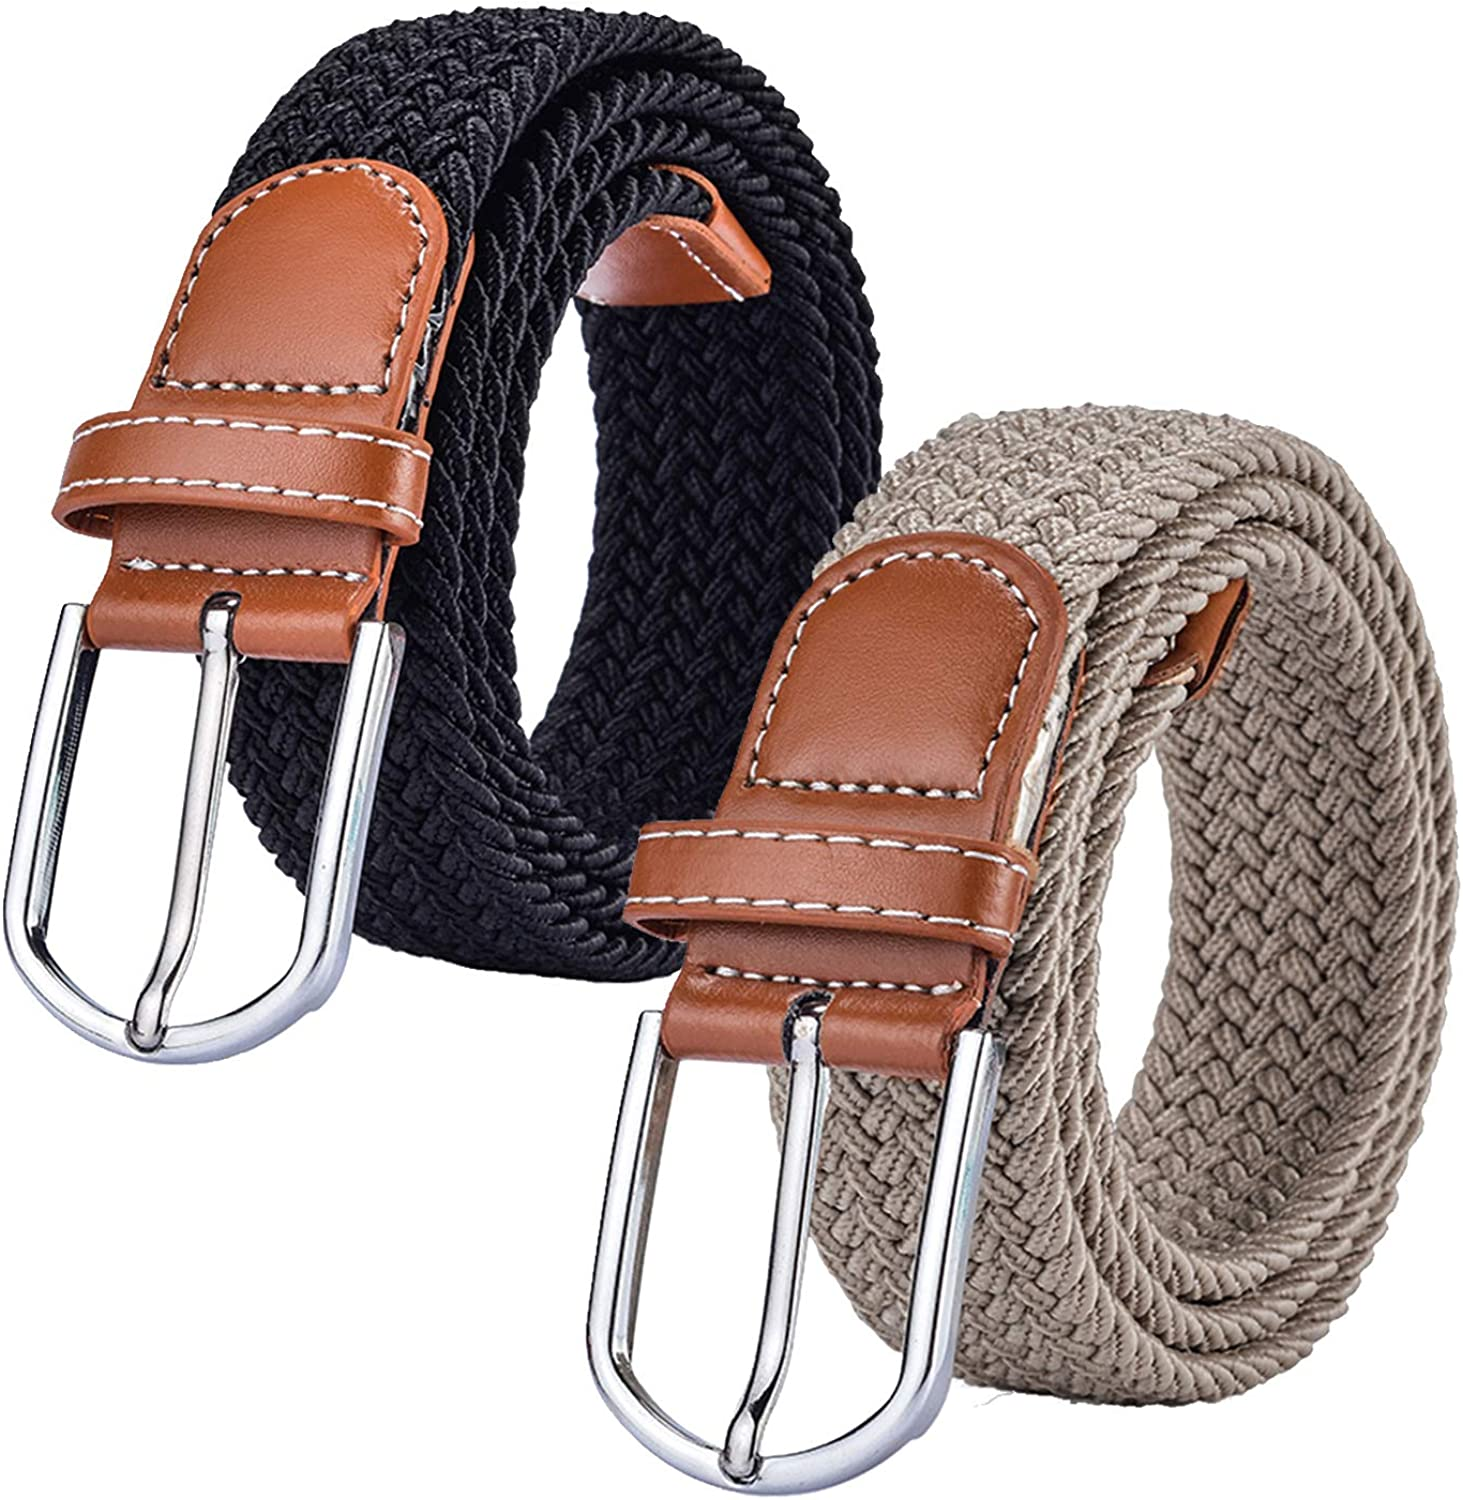 2 Pack Braided Canvas Belts Womens Woven Elastic Stretch Fabric Multicolord Belt